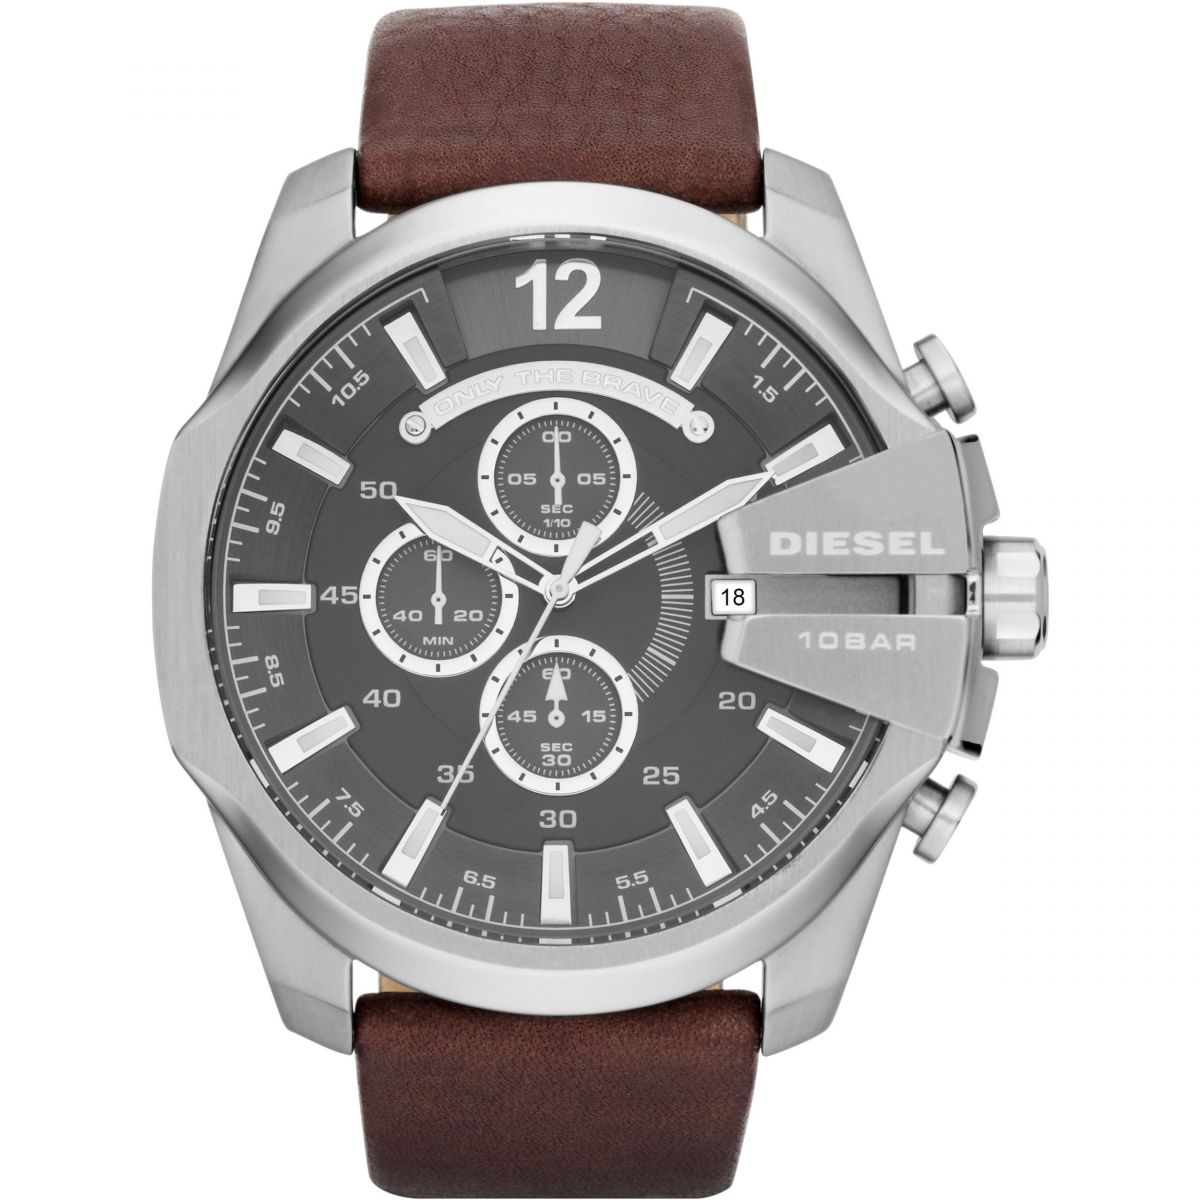 image from mens watches the chief watch diesel mega